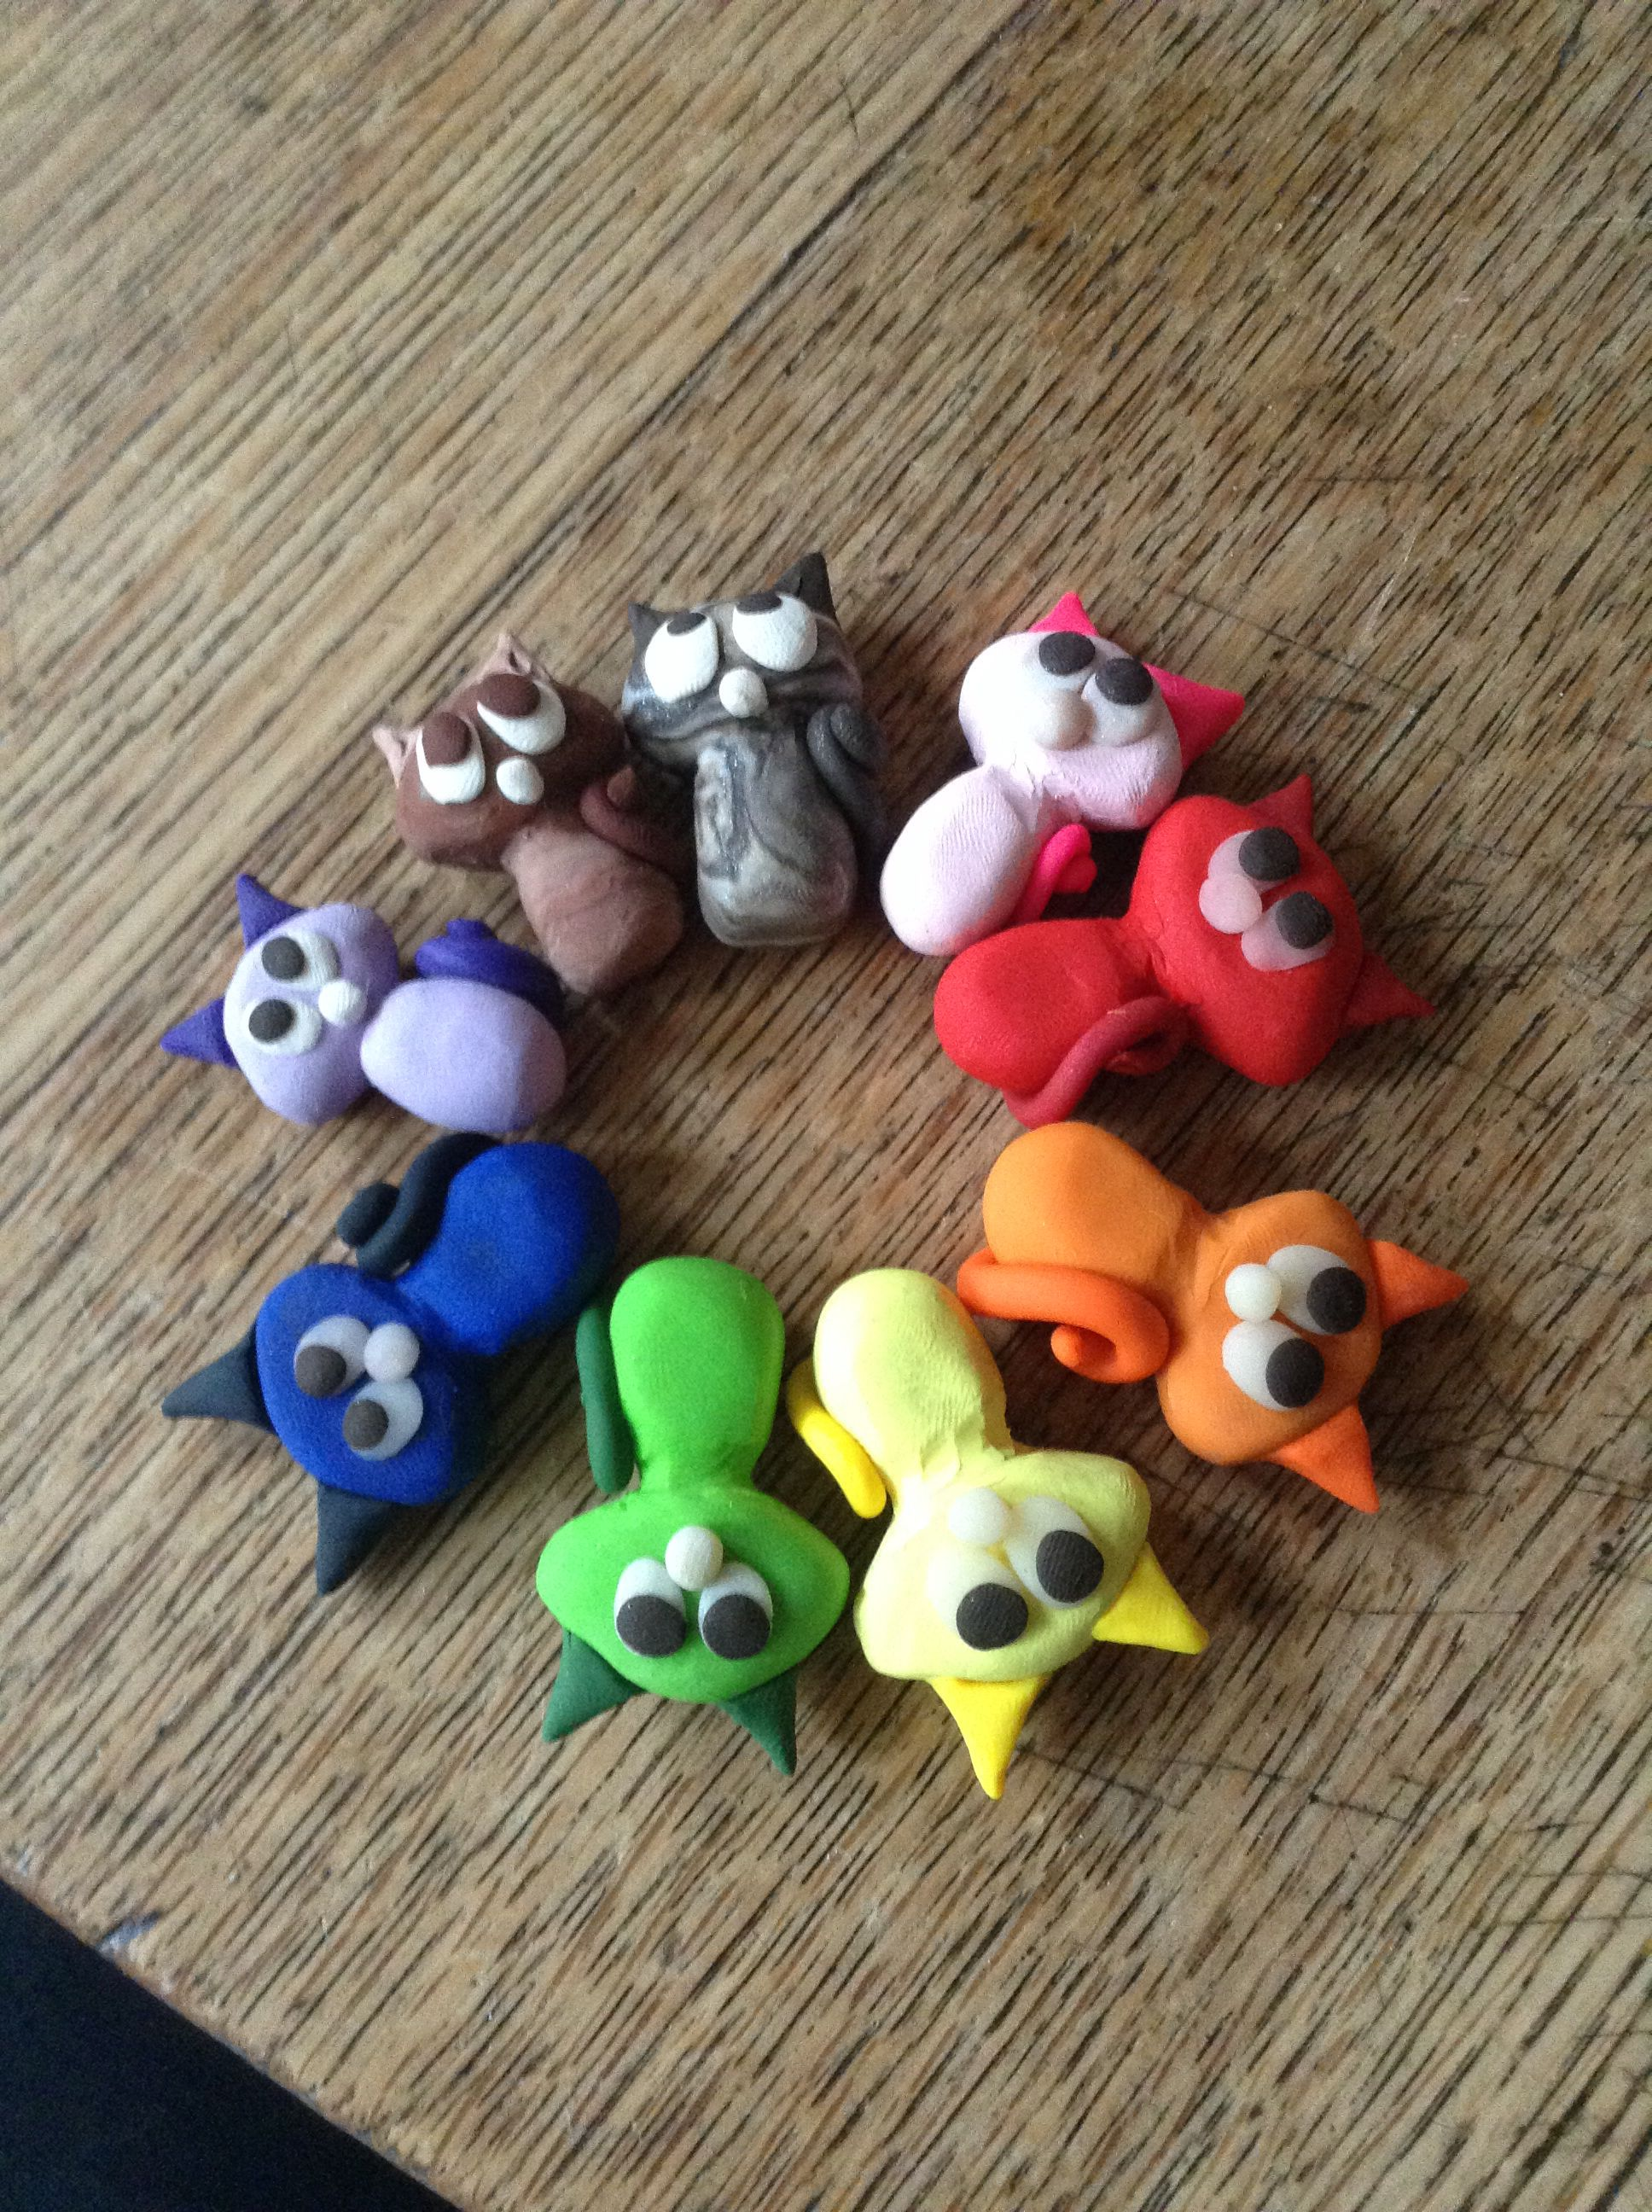 These Are Some Cute Clay Cats There A Great Idea For Making Out